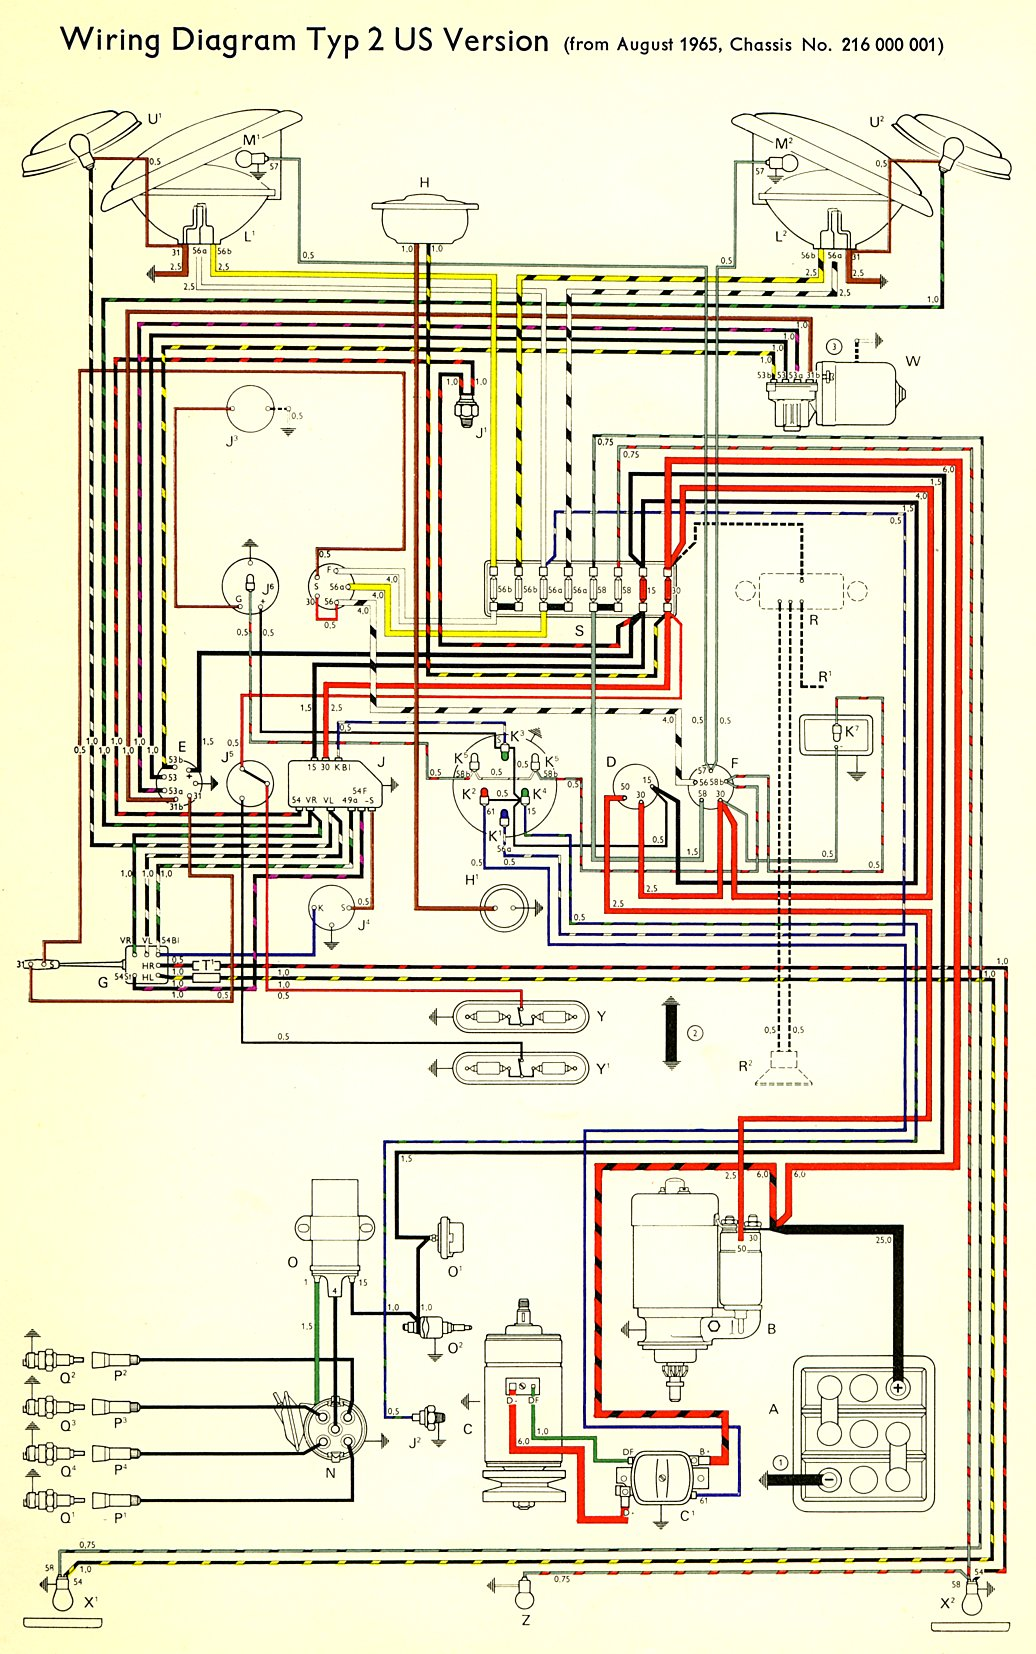 WRG-4699] 1965 Corvette Dash Wiring Diagram on